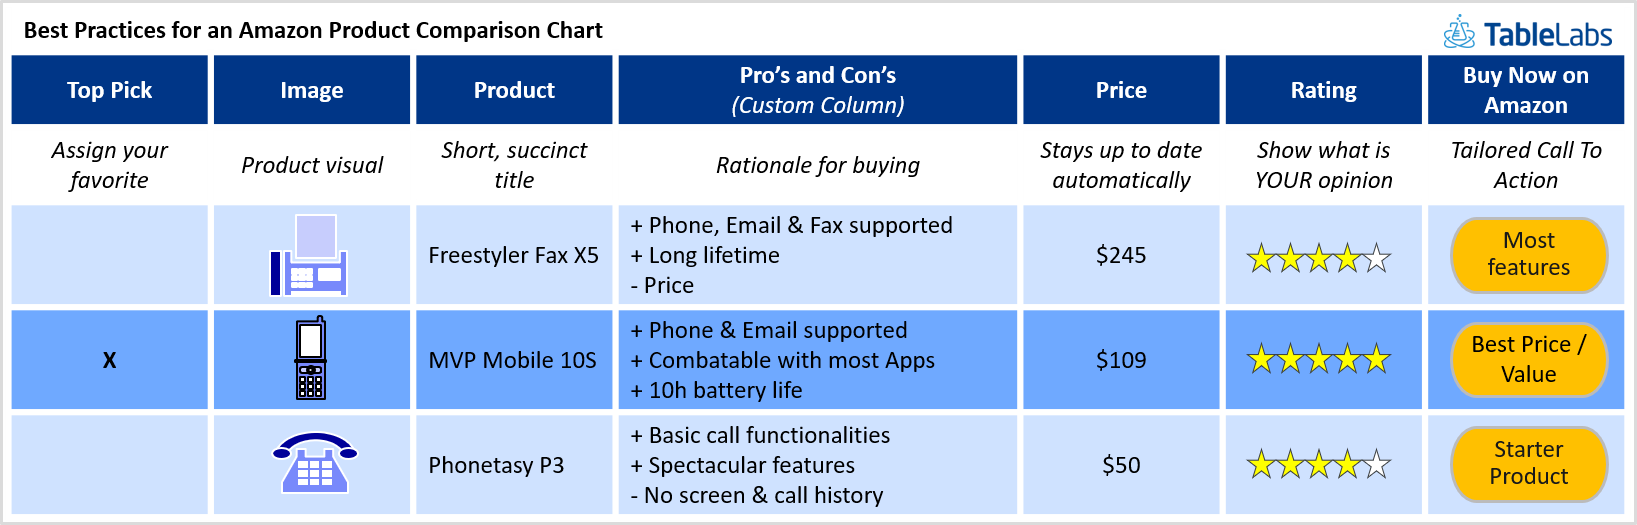 Personalization best practices example for product comparison charts